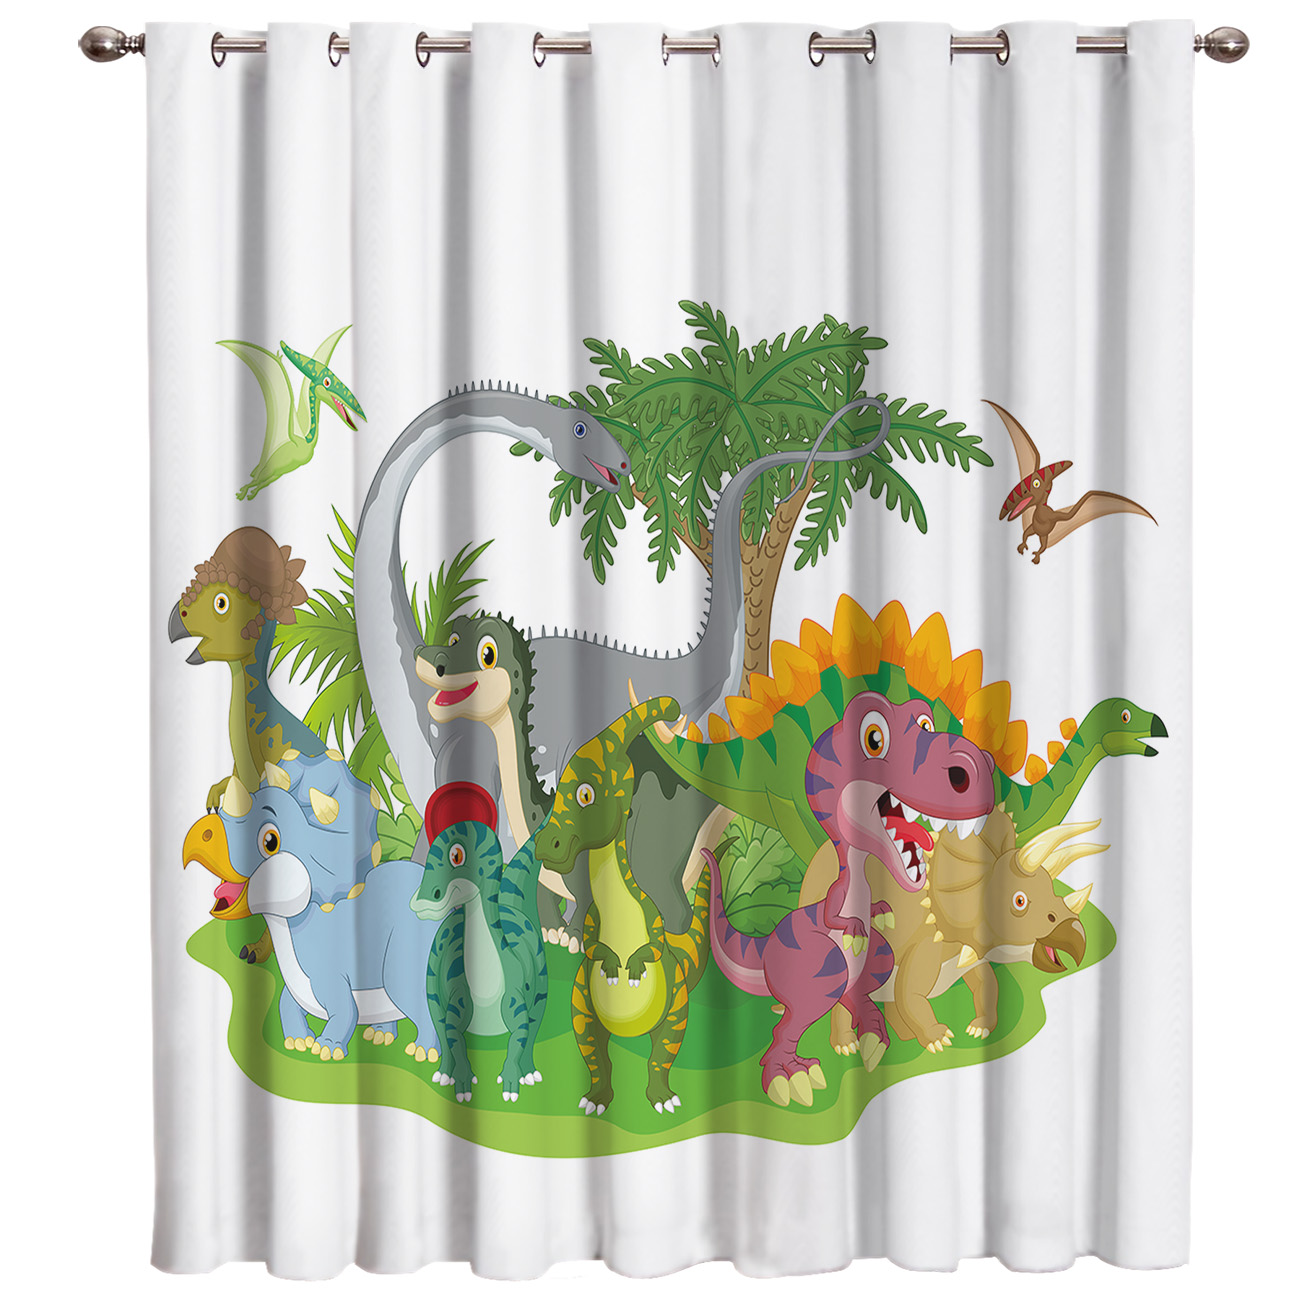 Colour Dinosaur Drawings Window Treatments Curtains Valance Room Curtains Large Window Living Room Bedroom Kitchen Indoor Floral